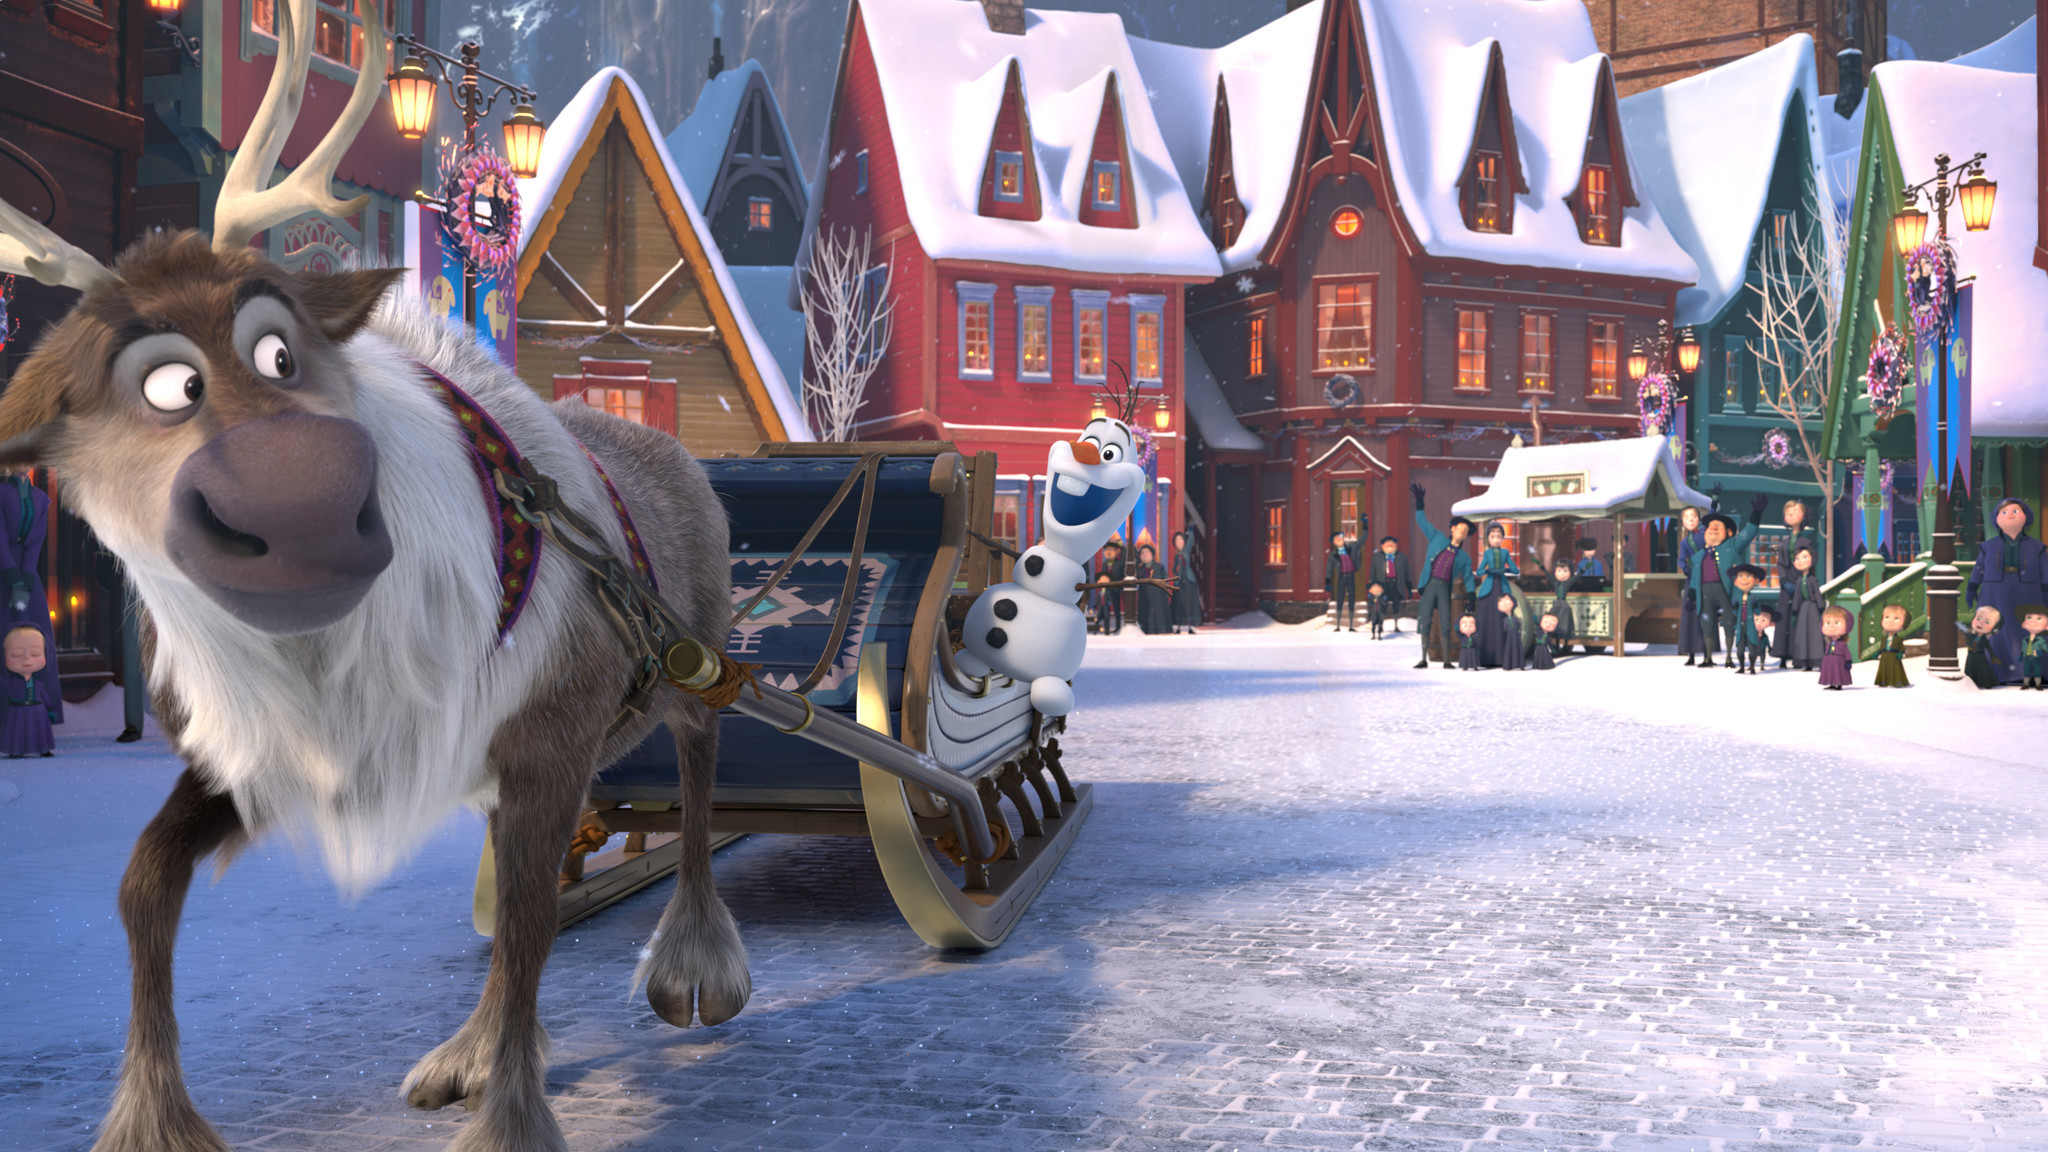 Olaf (voice of Josh Gad) teams up with Sven (the reindeer) for a holiday-themed short titled